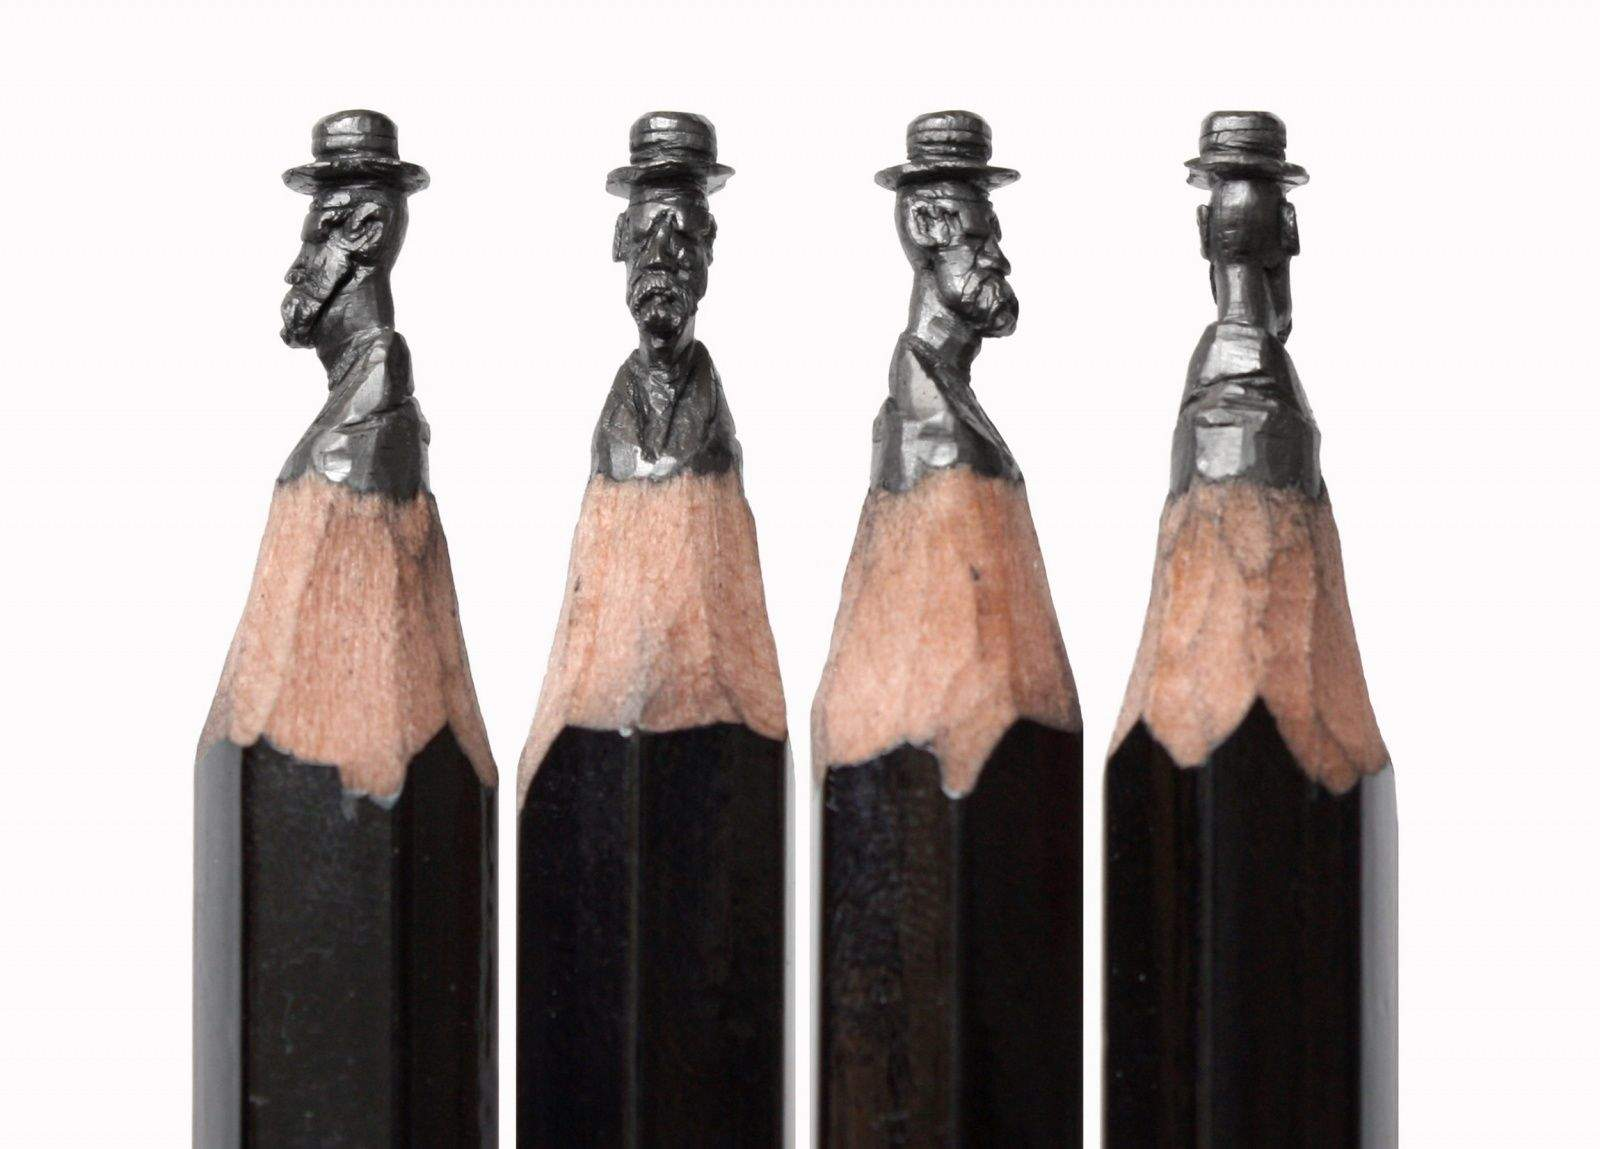 Pencil artist works in miniature and that s the point